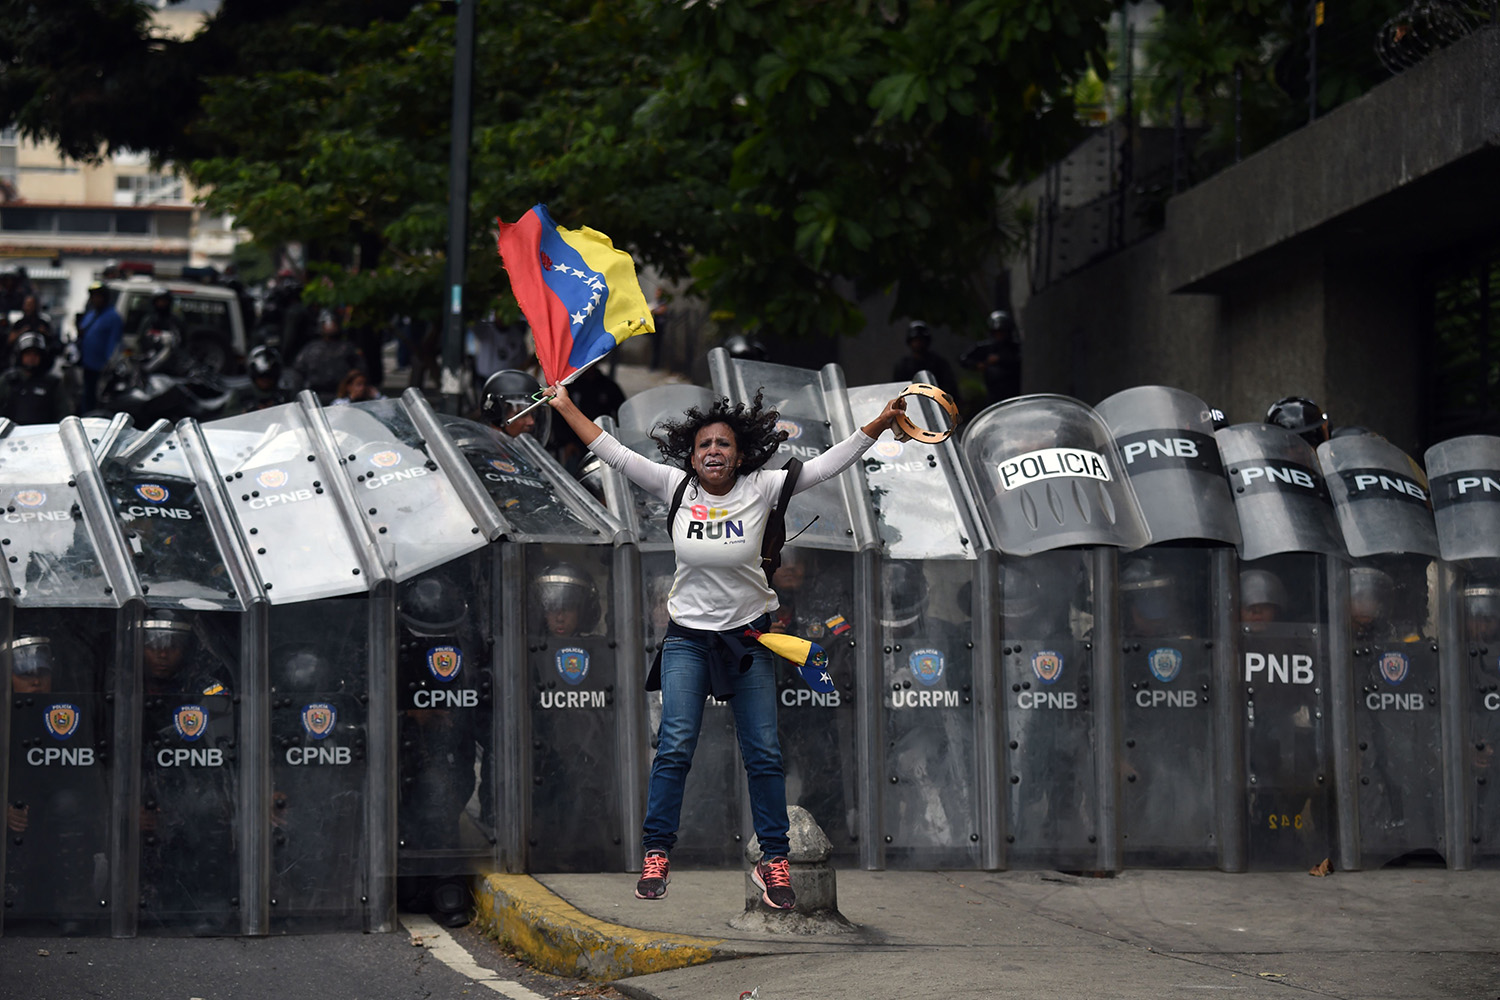 A supporter of Venezuelan opposition leader Juan Guaidó tries to block security forces from making their way to the National Assembly in Caracas on March 10. FEDERICO PARRA/AFP via Getty Images